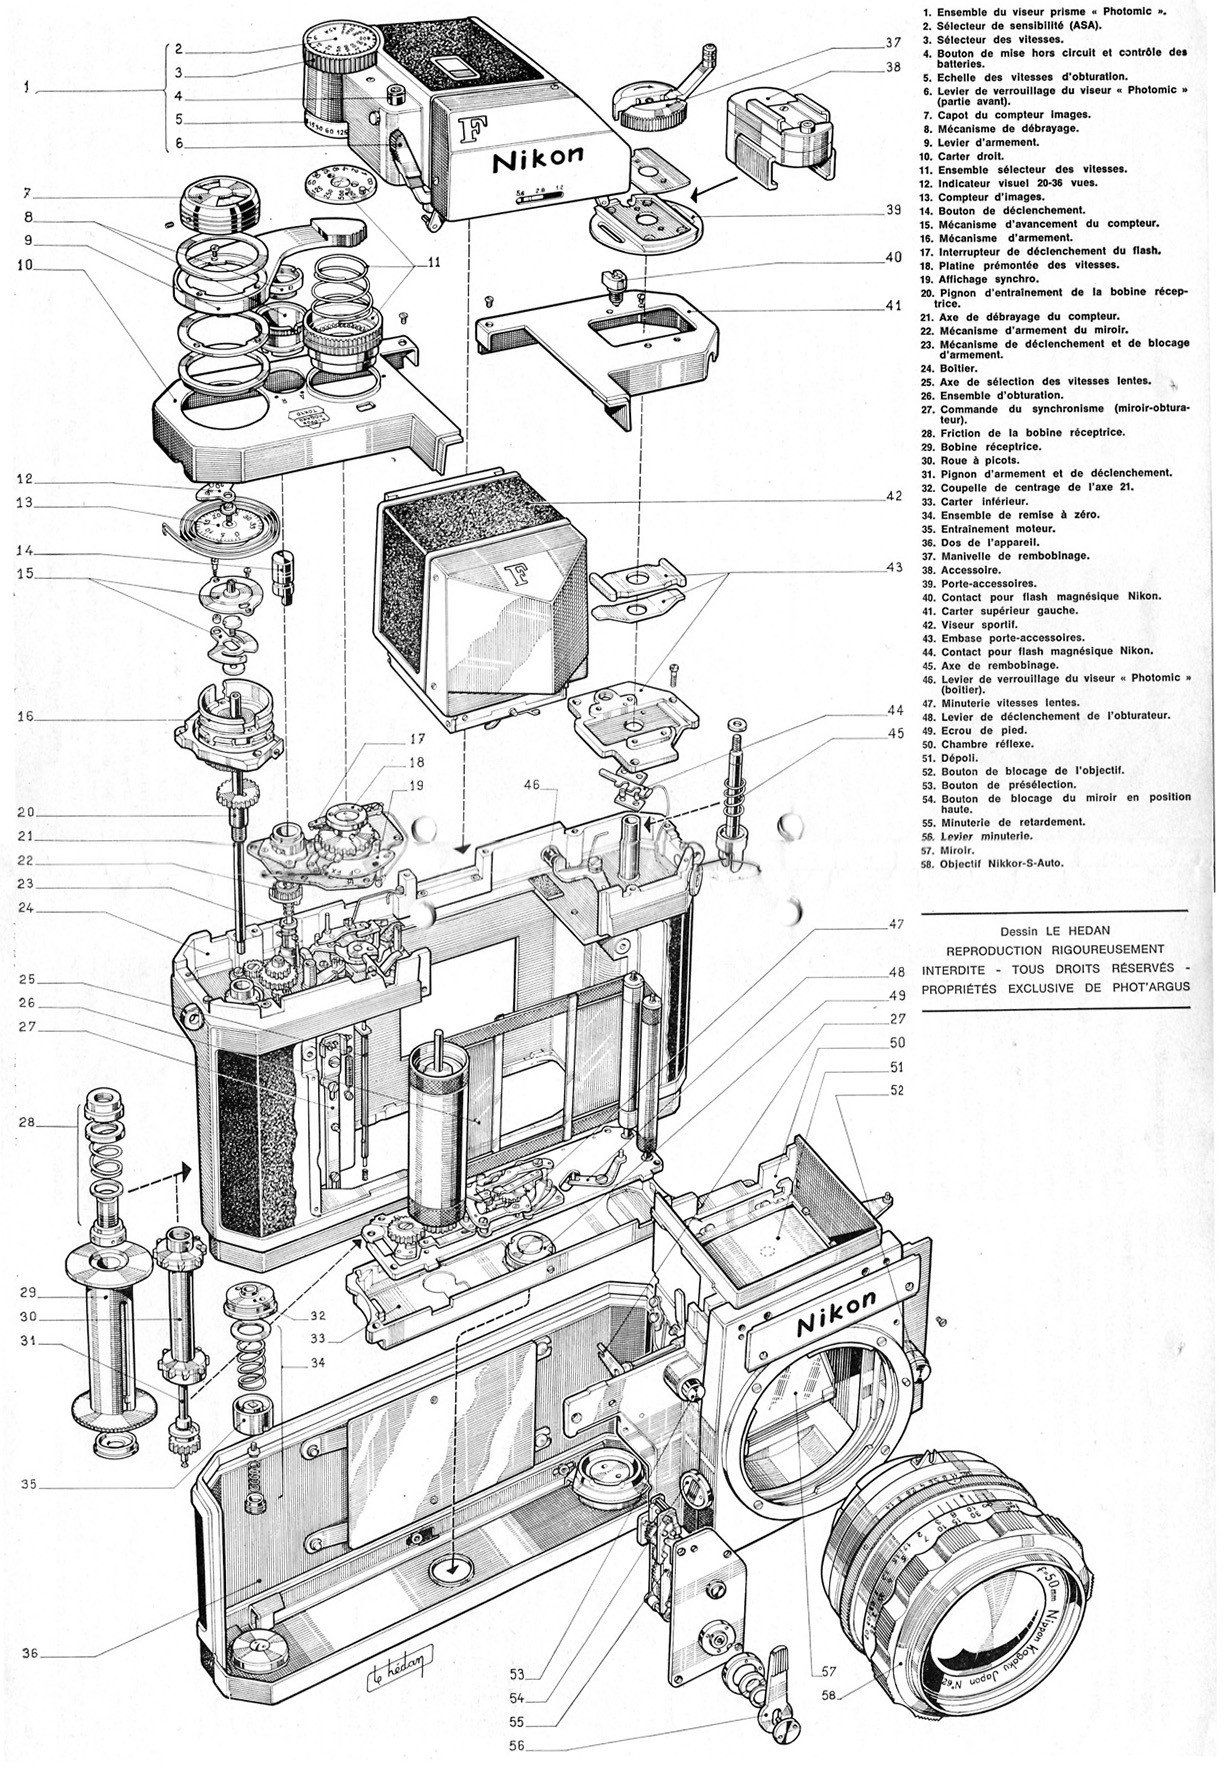 These Schematics Offer an Exploded View of Old Nikon SLR Cameras ...